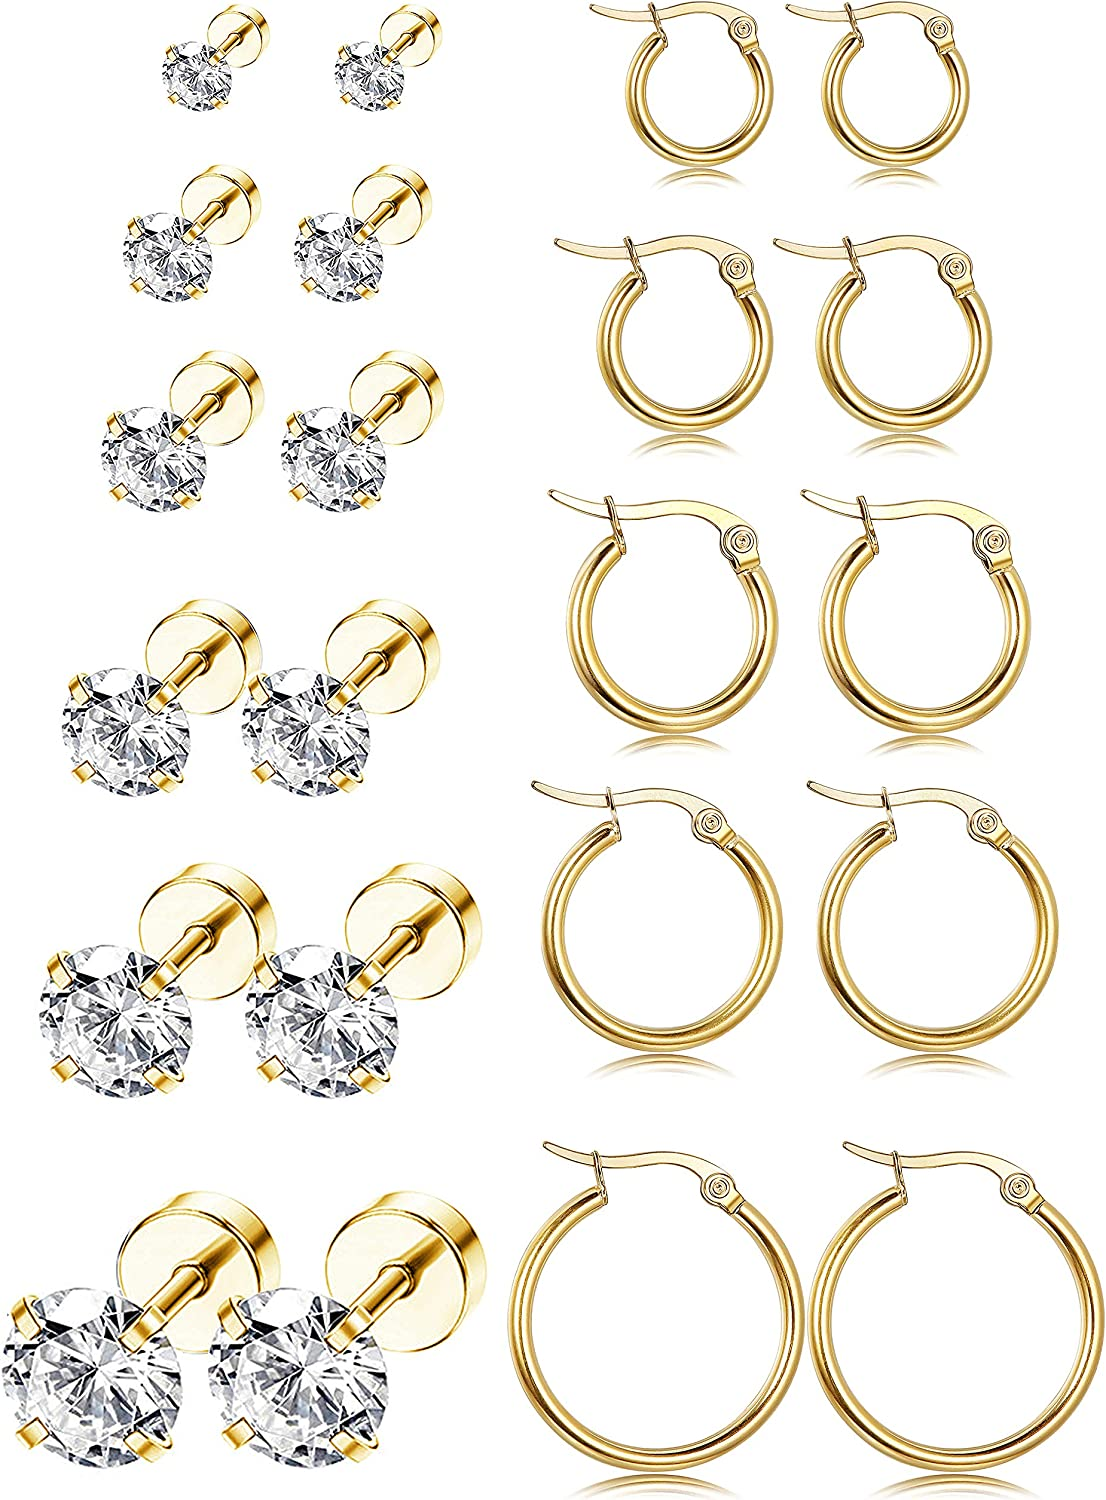 LOYALLOOK 11Pairs Stainless Steel Ear Stud Piercing Hoop Earrings Set Cute Huggie Earrings Cubic Zirconia Cartilage Barbell Stud Earring Screw Flat Back Earrings